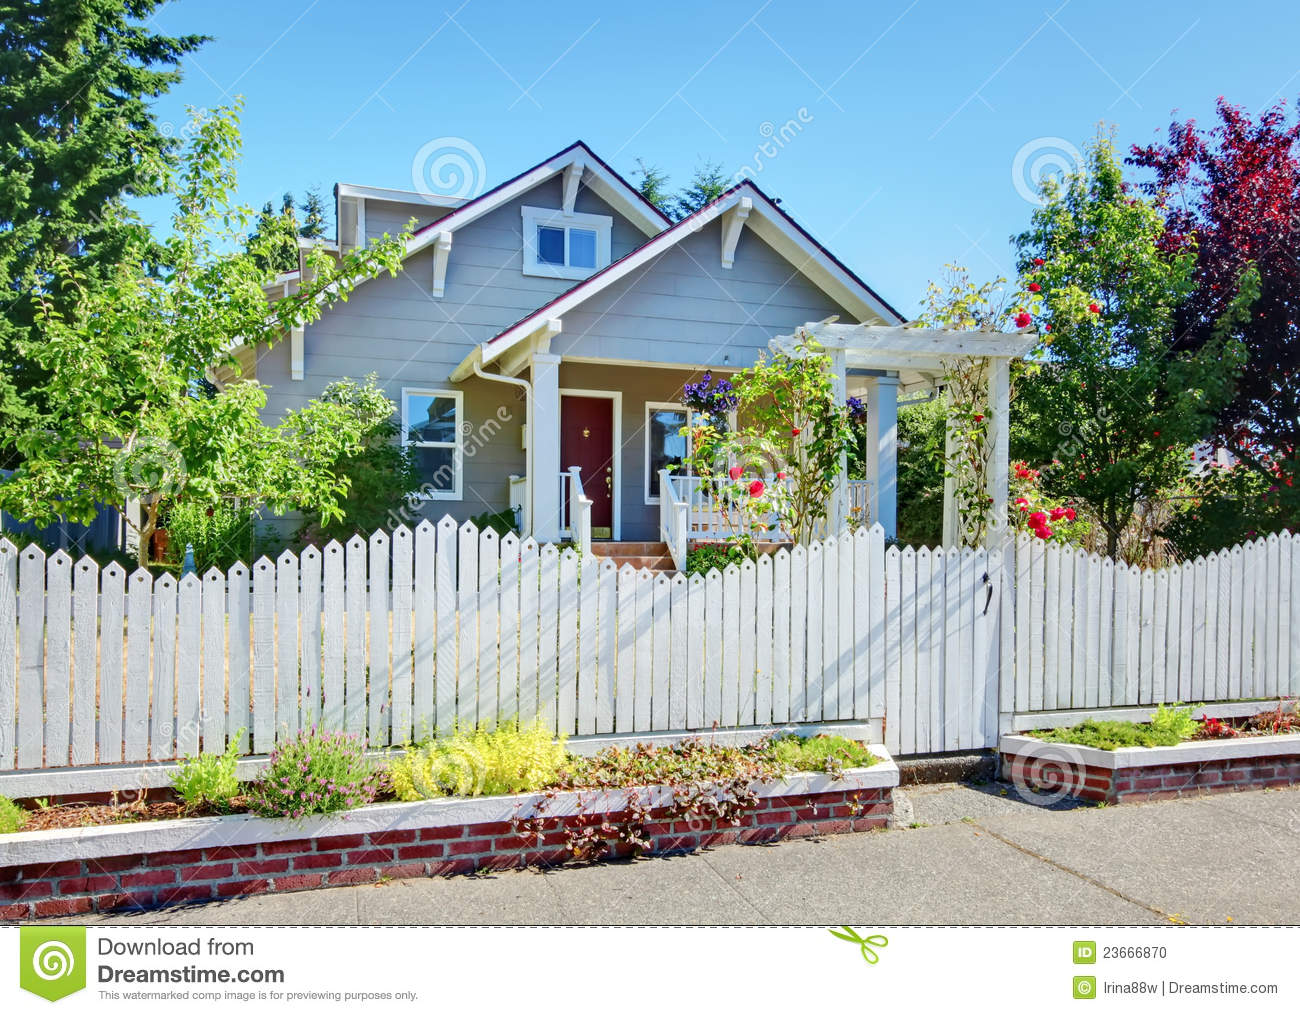 Red entrance door in front of residential house stock photo - Small Grey Craftsman Style Home Behind White Fence Stock